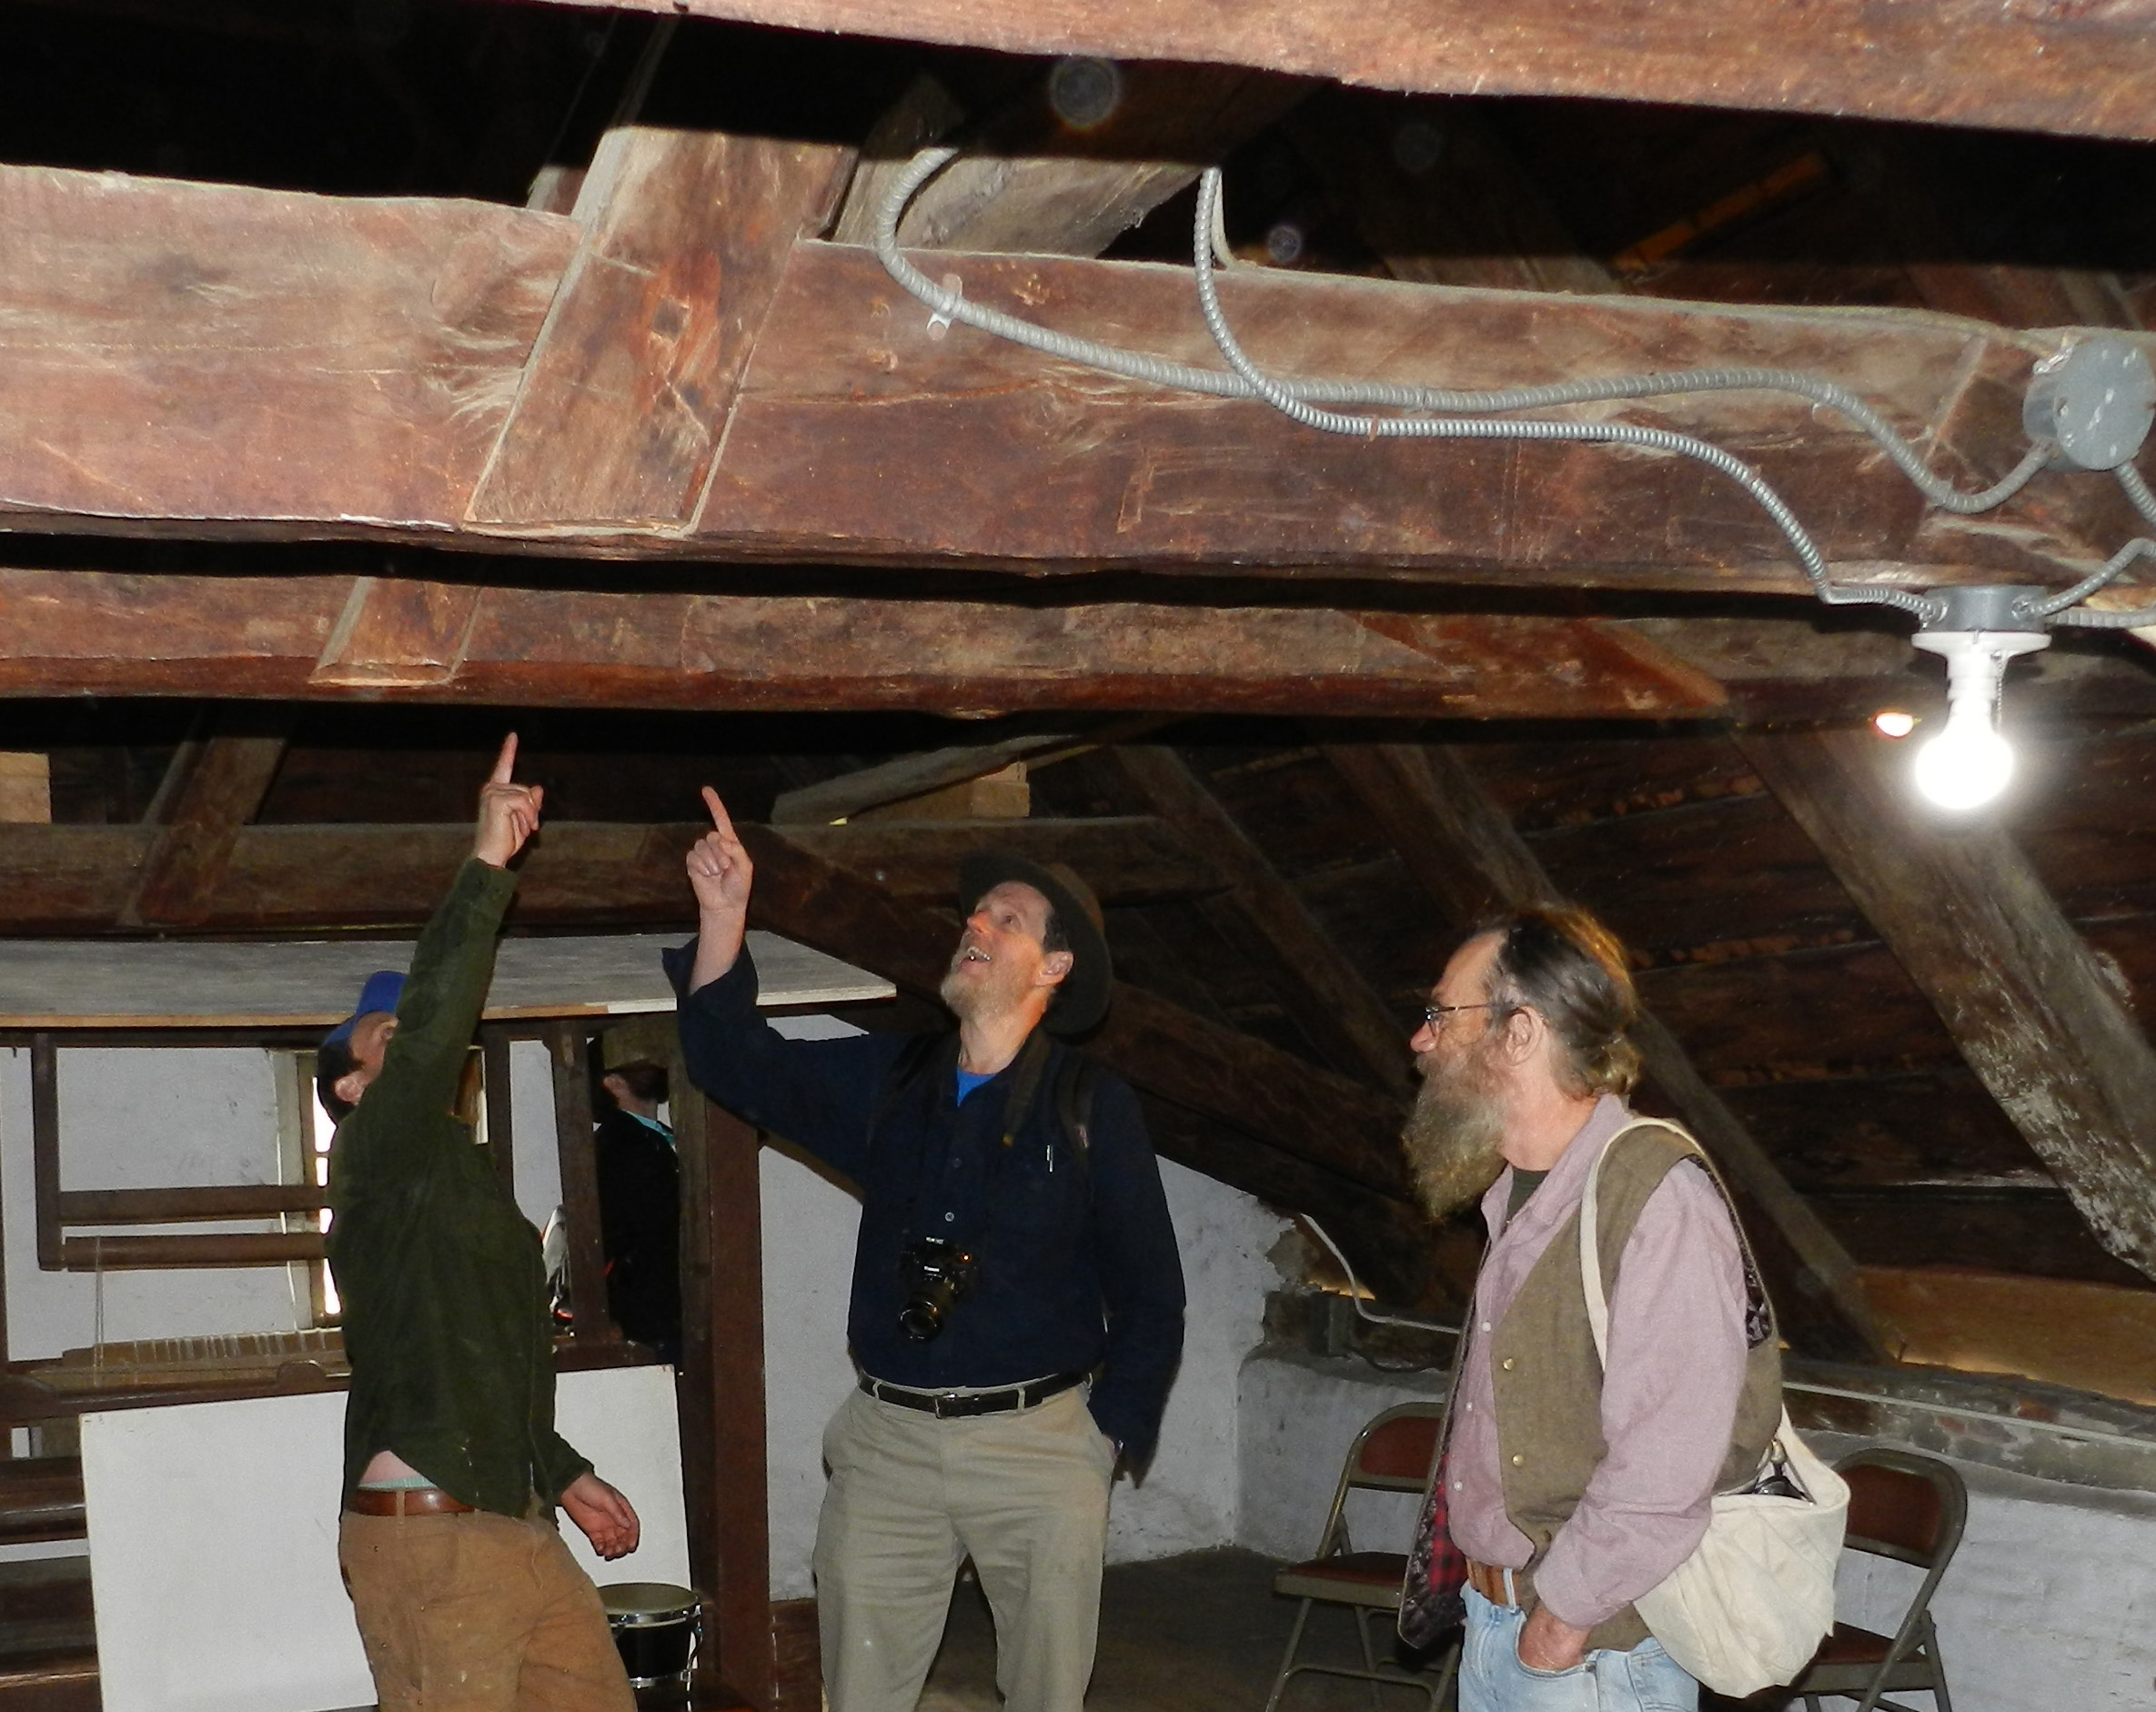 Members of the Traditional Timber Frame Research and Advisory Group (TTRAG) examine timber framing in the attic of the Jean Hasbrouck House, 2017.